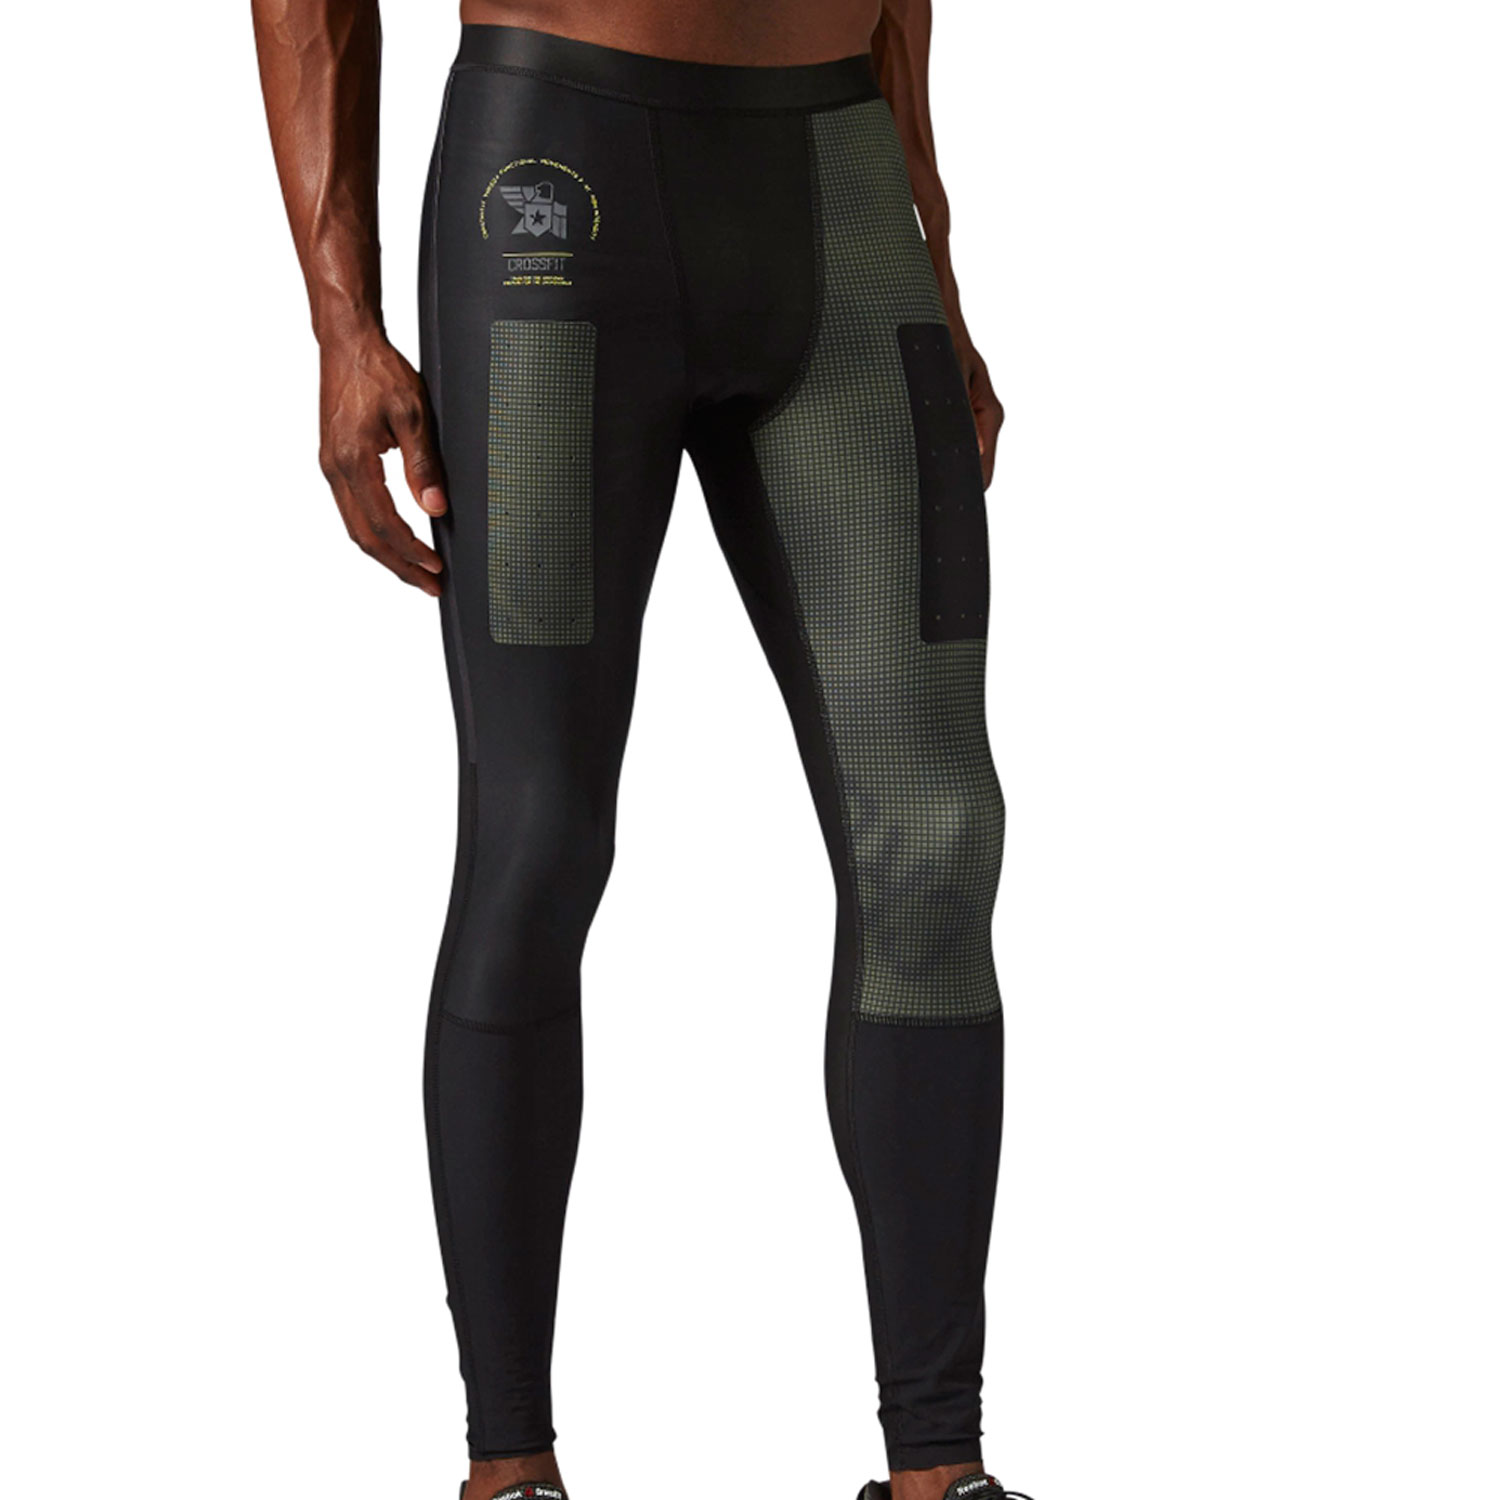 Men's Reebok Crossfit Compression Tight Black ap8952